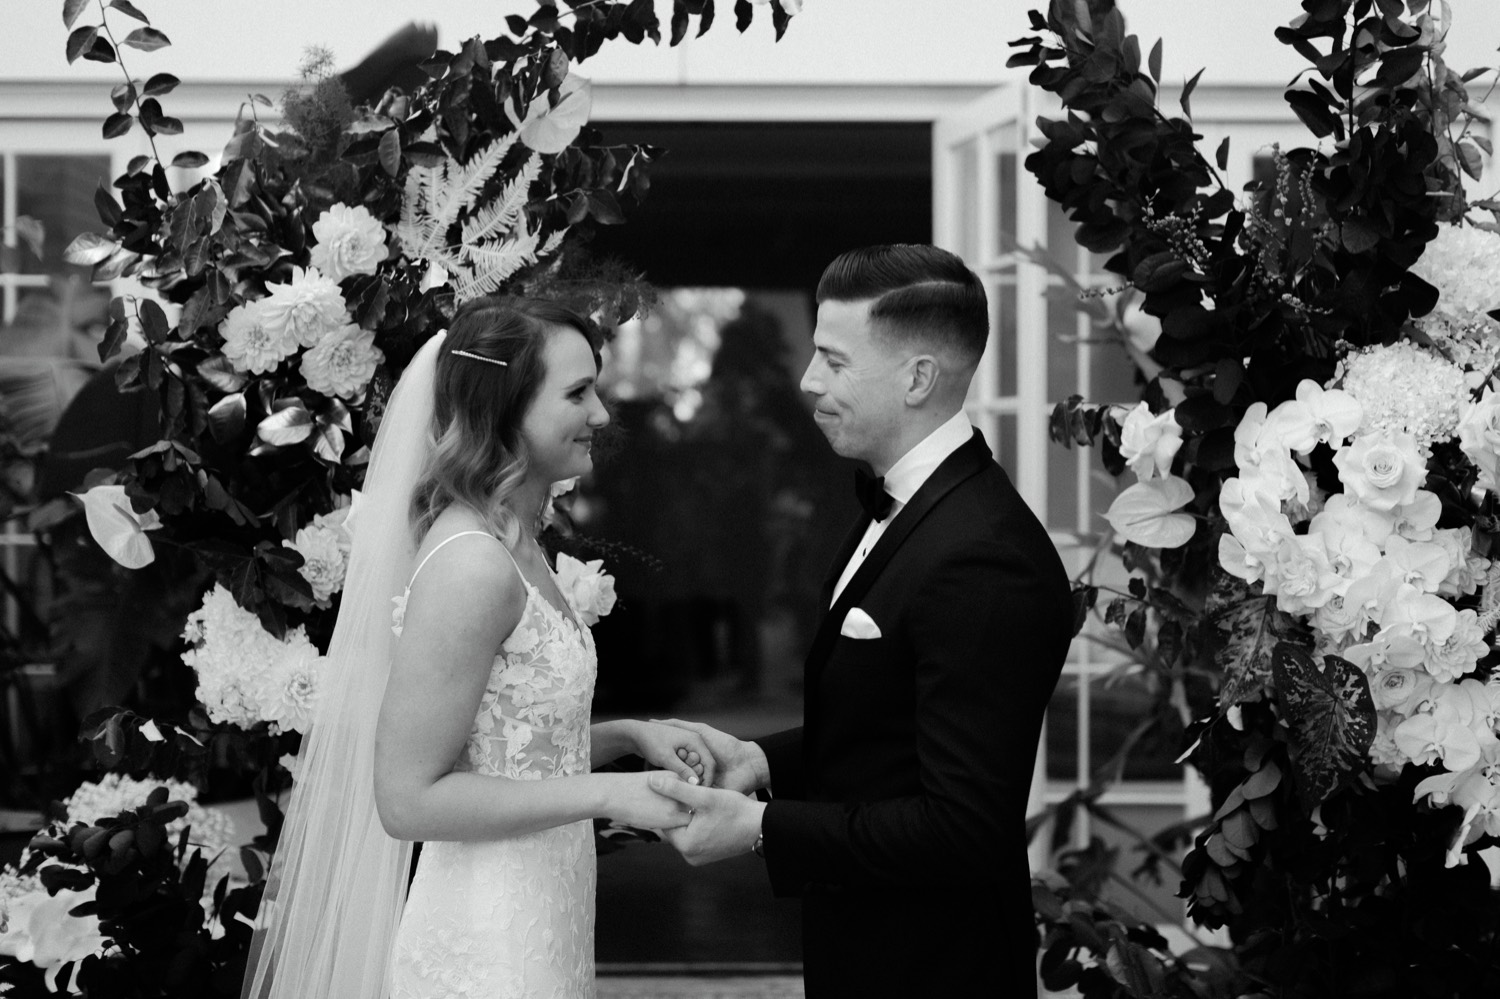 bride and groom looking lovingly at each other mid-ceremony